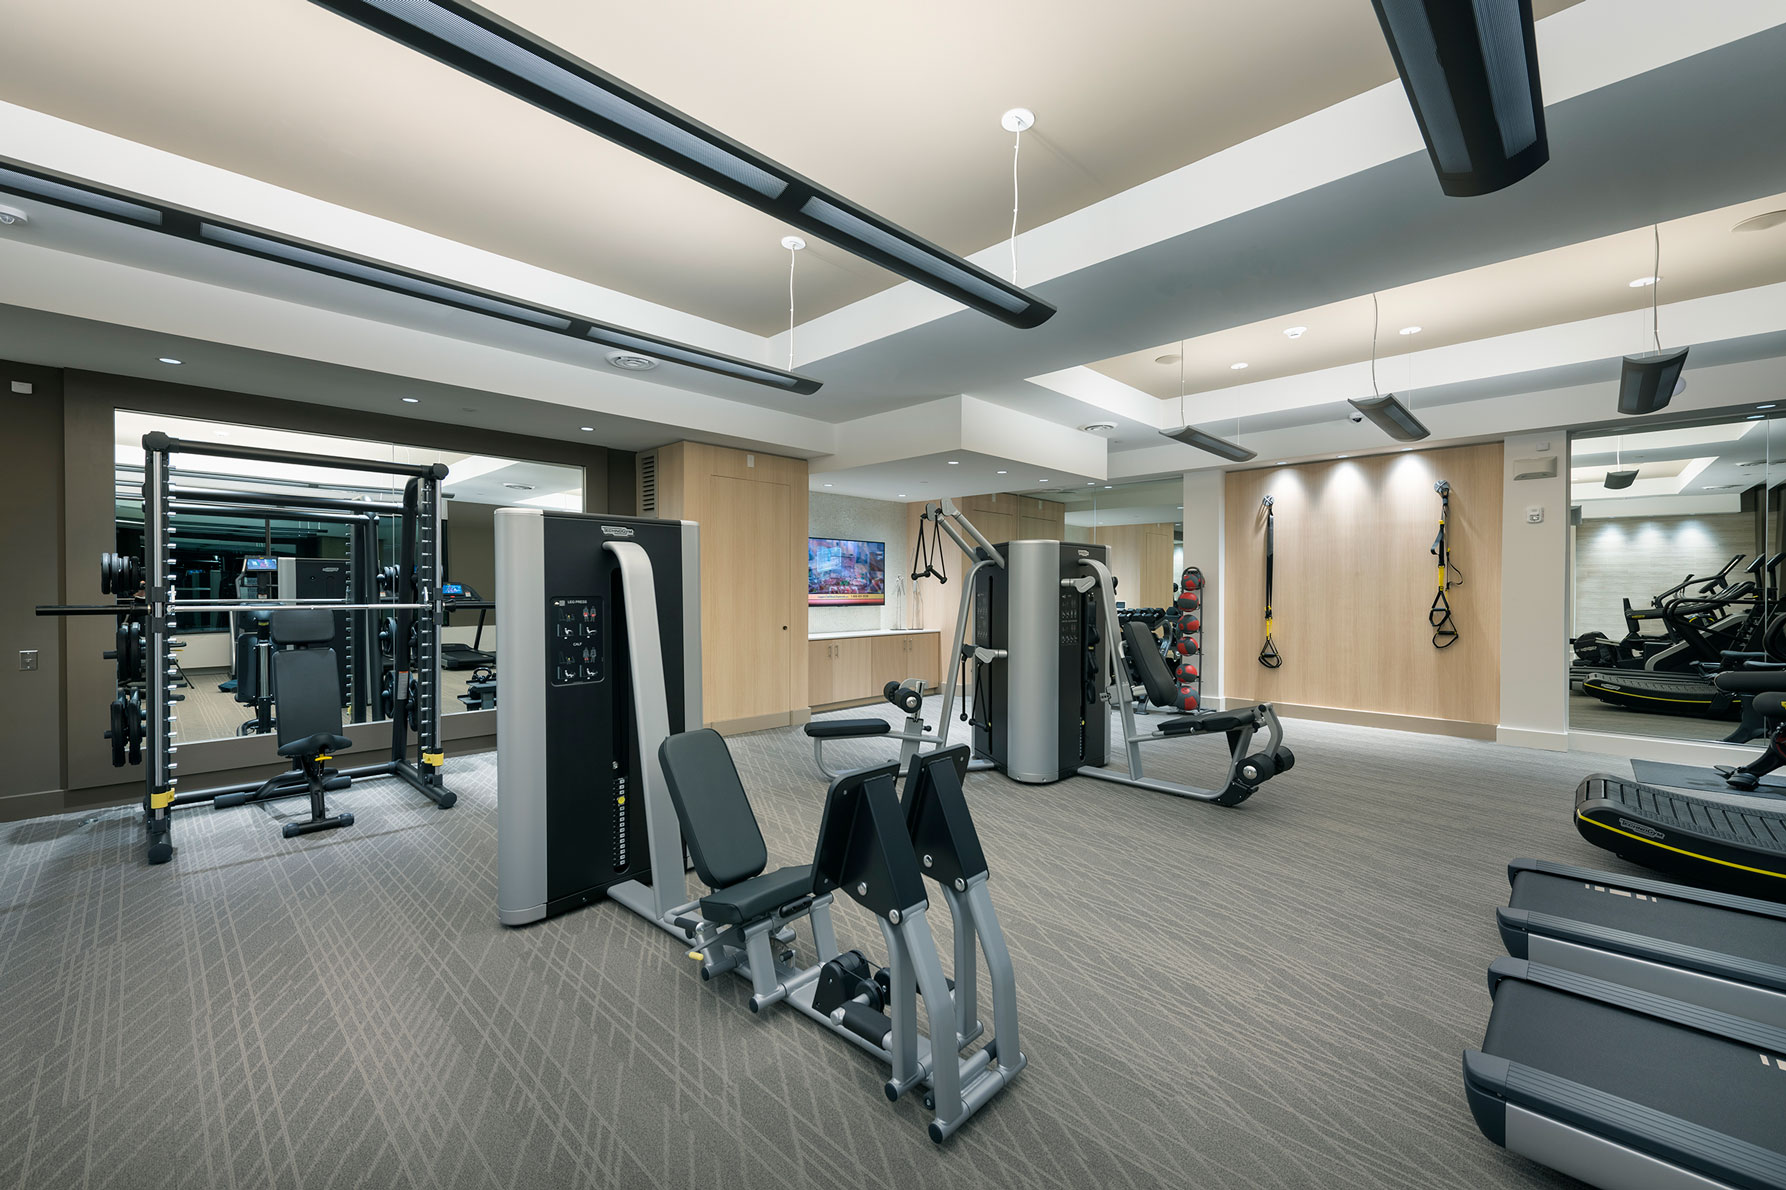 Fitness center with variety of weight machines and bands